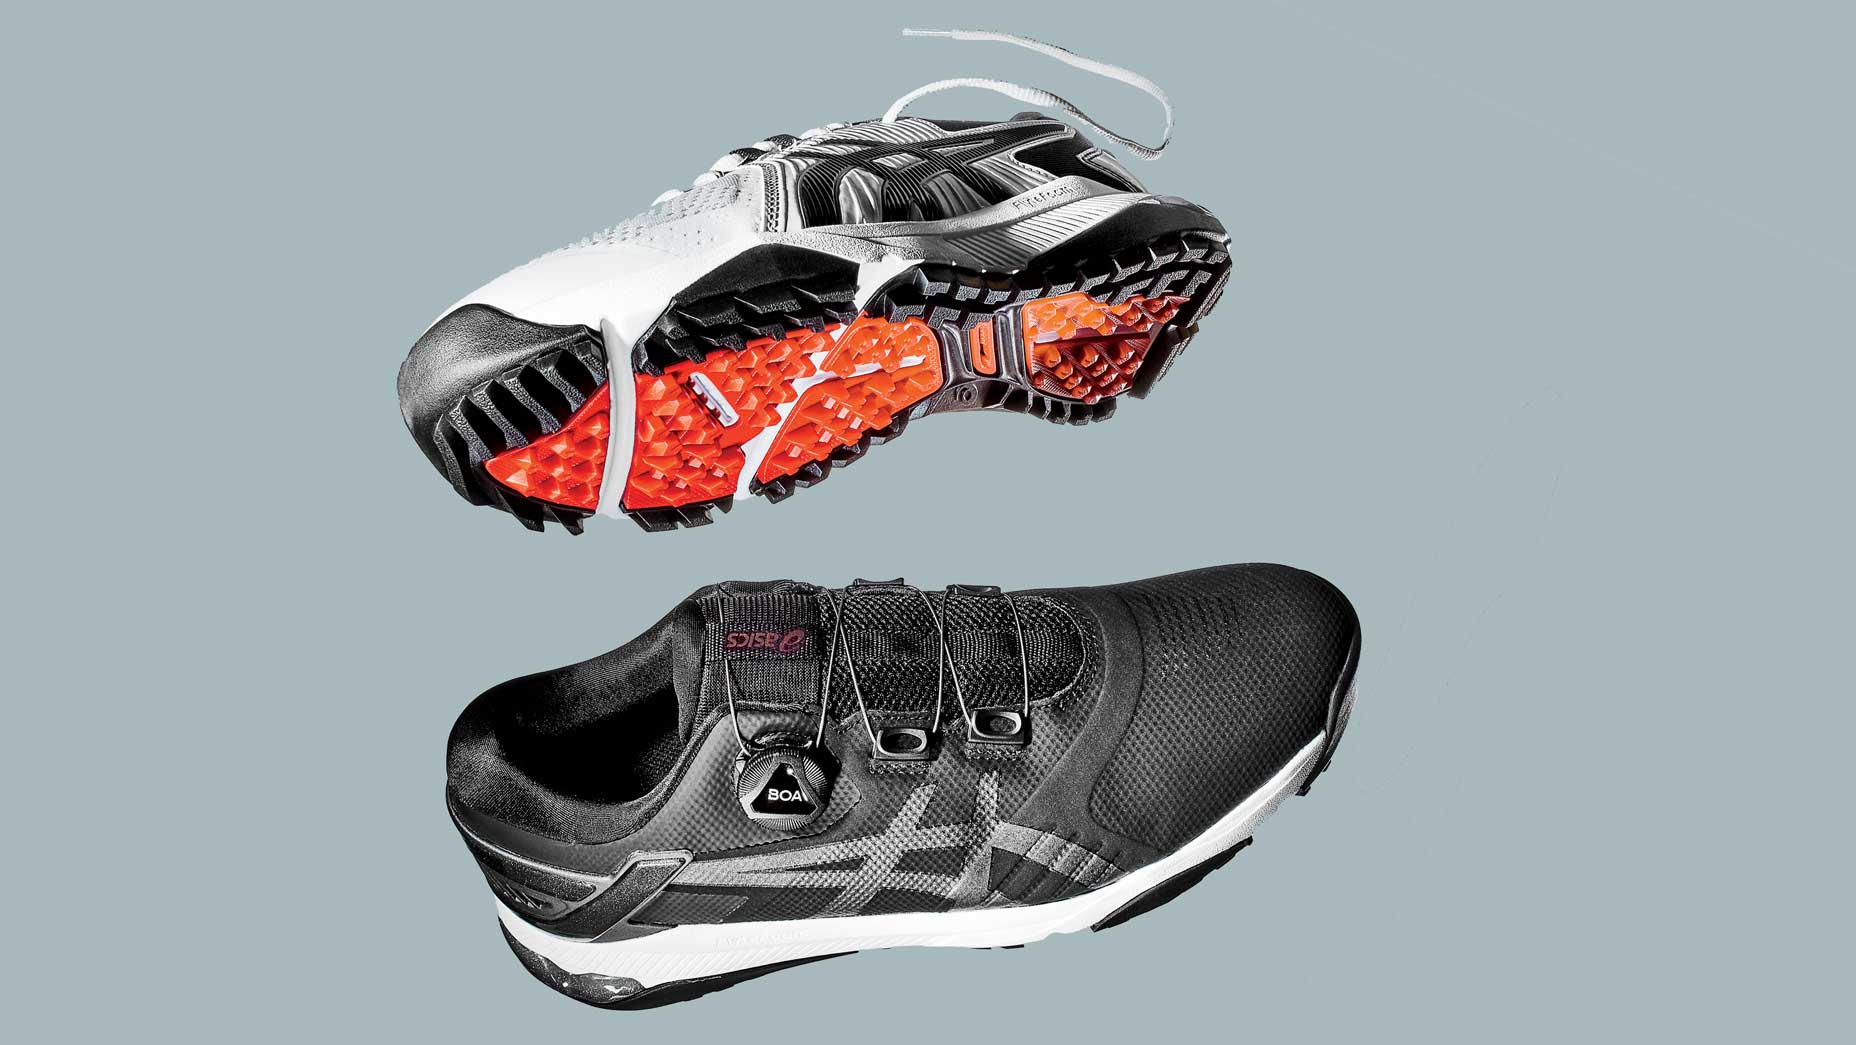 Two Asics golf shoes